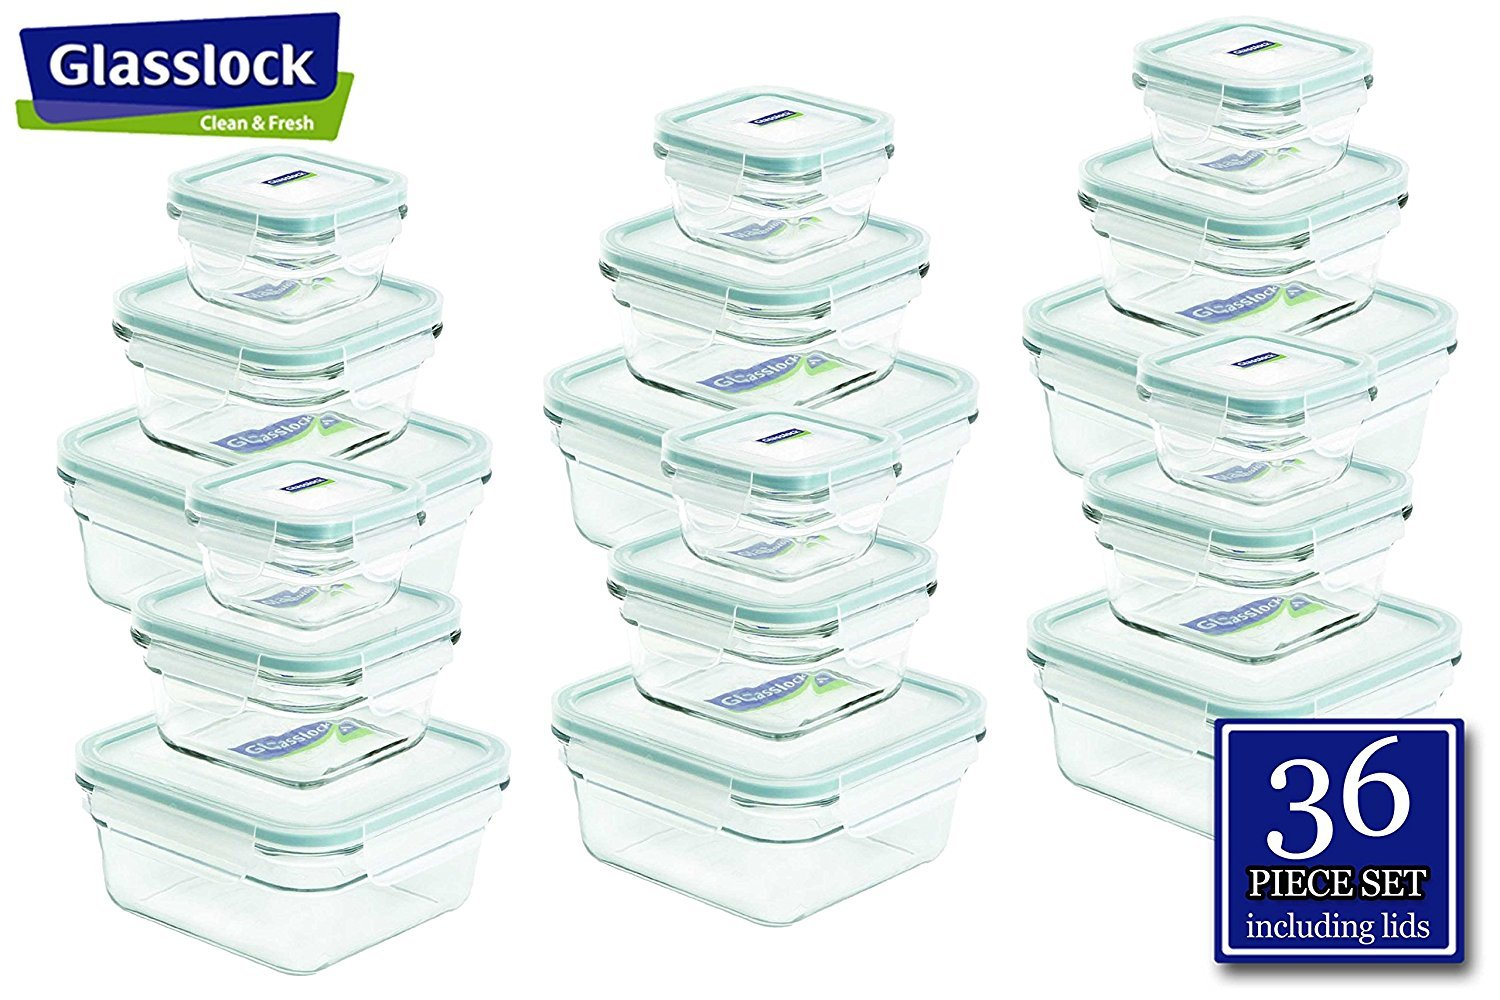 Snaplock Lid Tempered Glasslock Storage Containers 36pc set Square~Microwave & Oven Safe Spill Proof